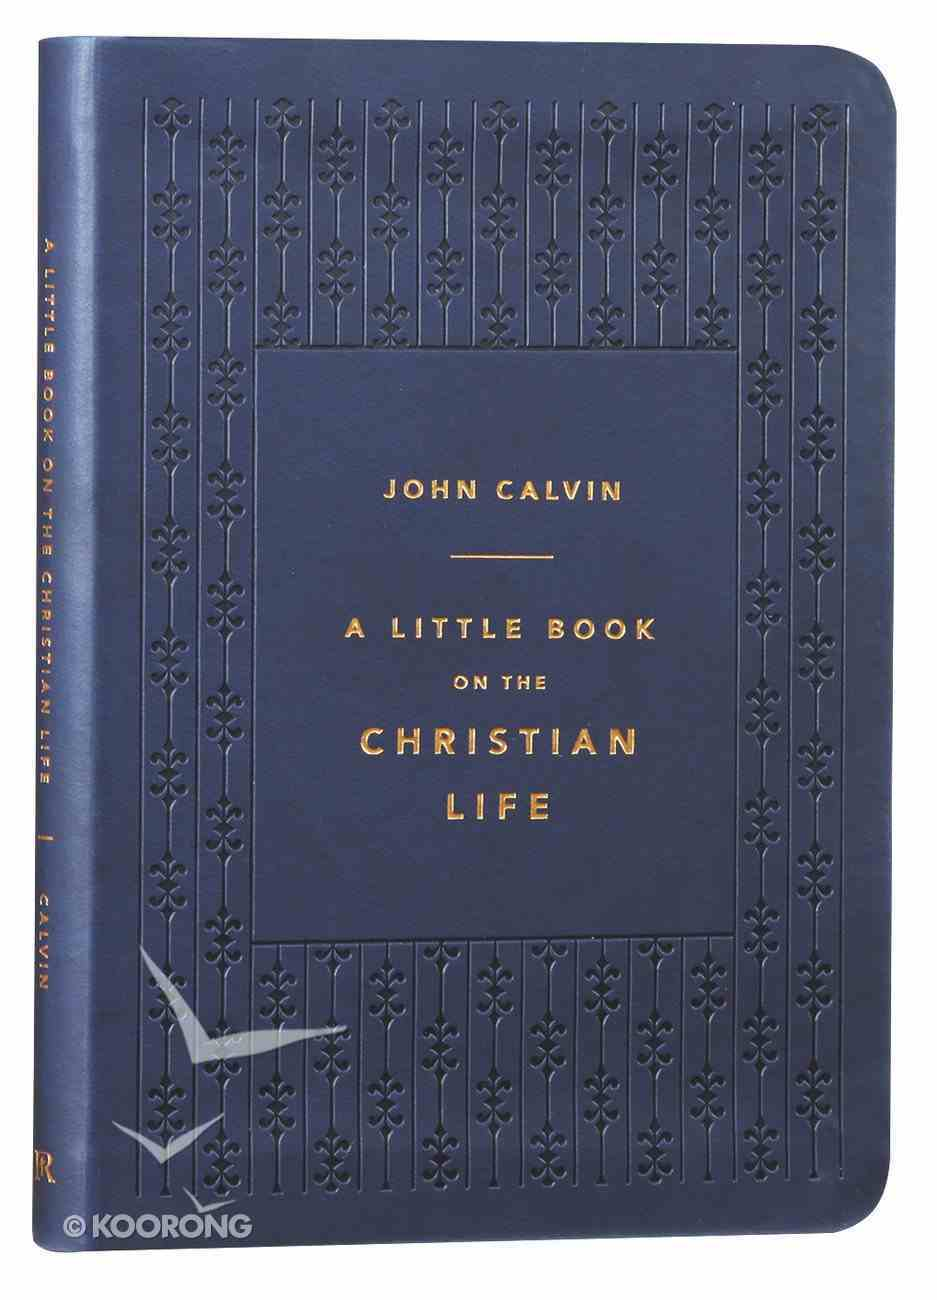 A Little Book on the Christian Life (Navy Gift Edition) Imitation Leather